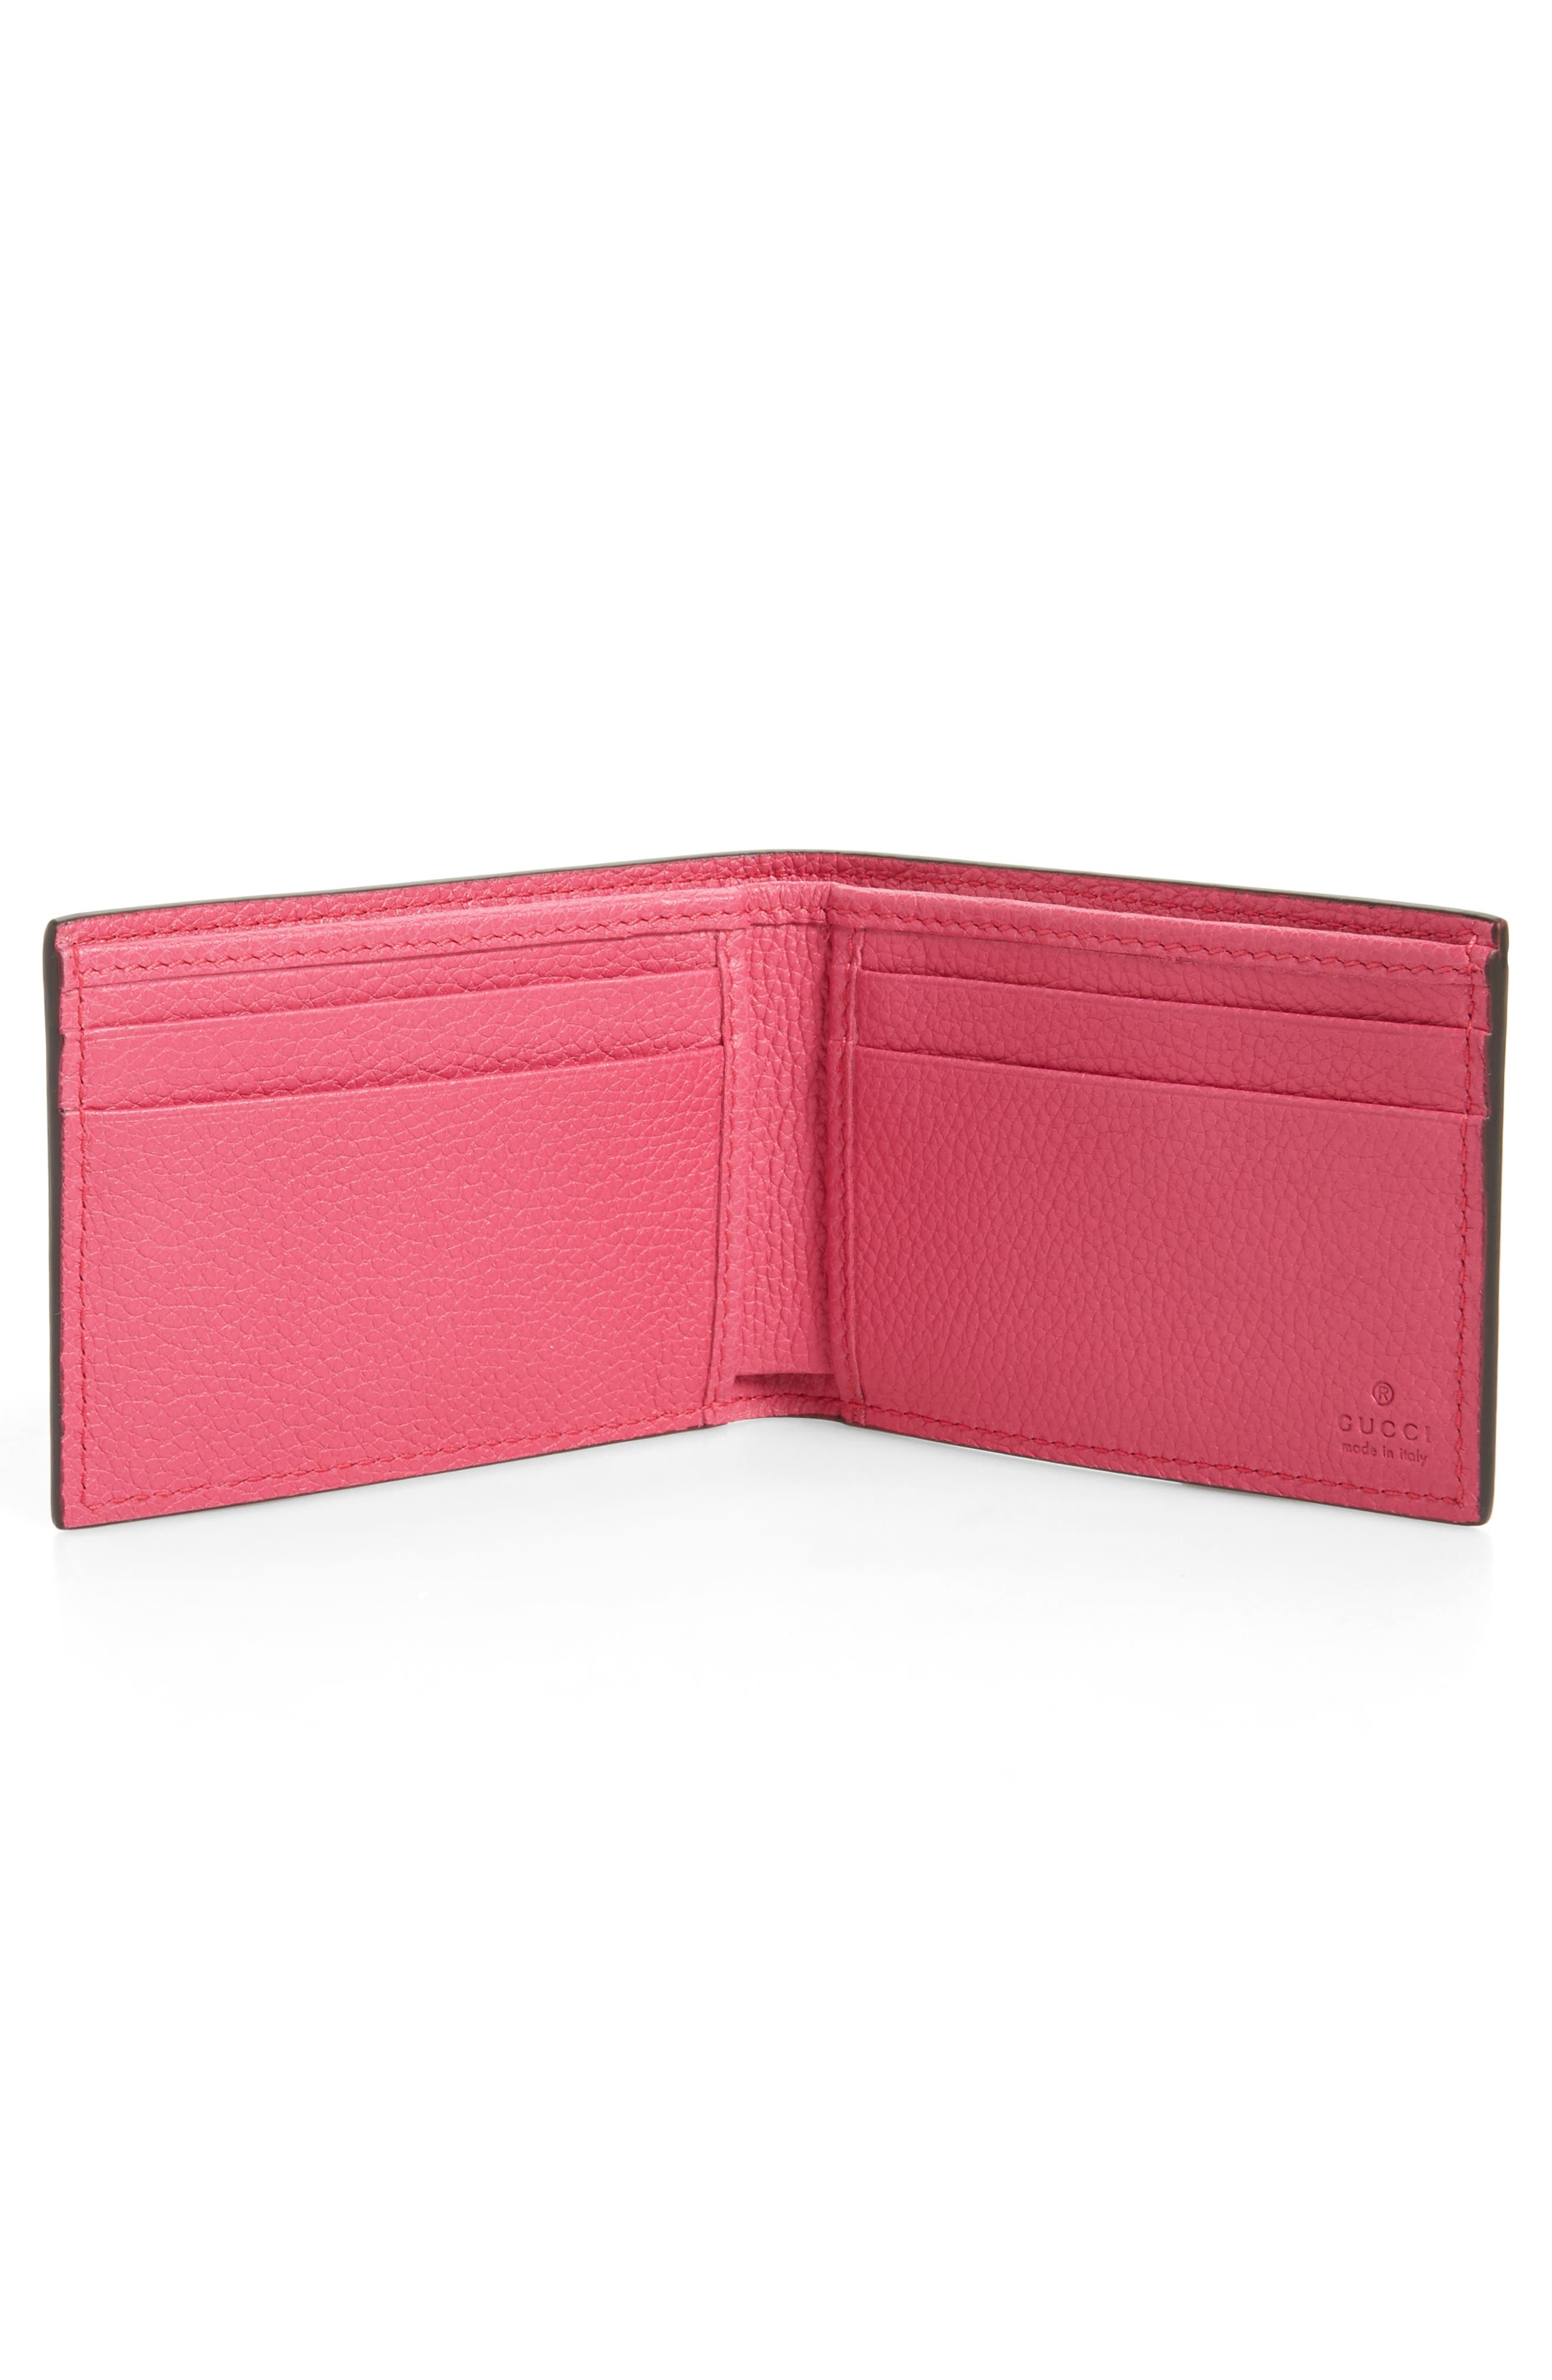 Bifold Leather Wallet,                             Alternate thumbnail 2, color,                             Pink